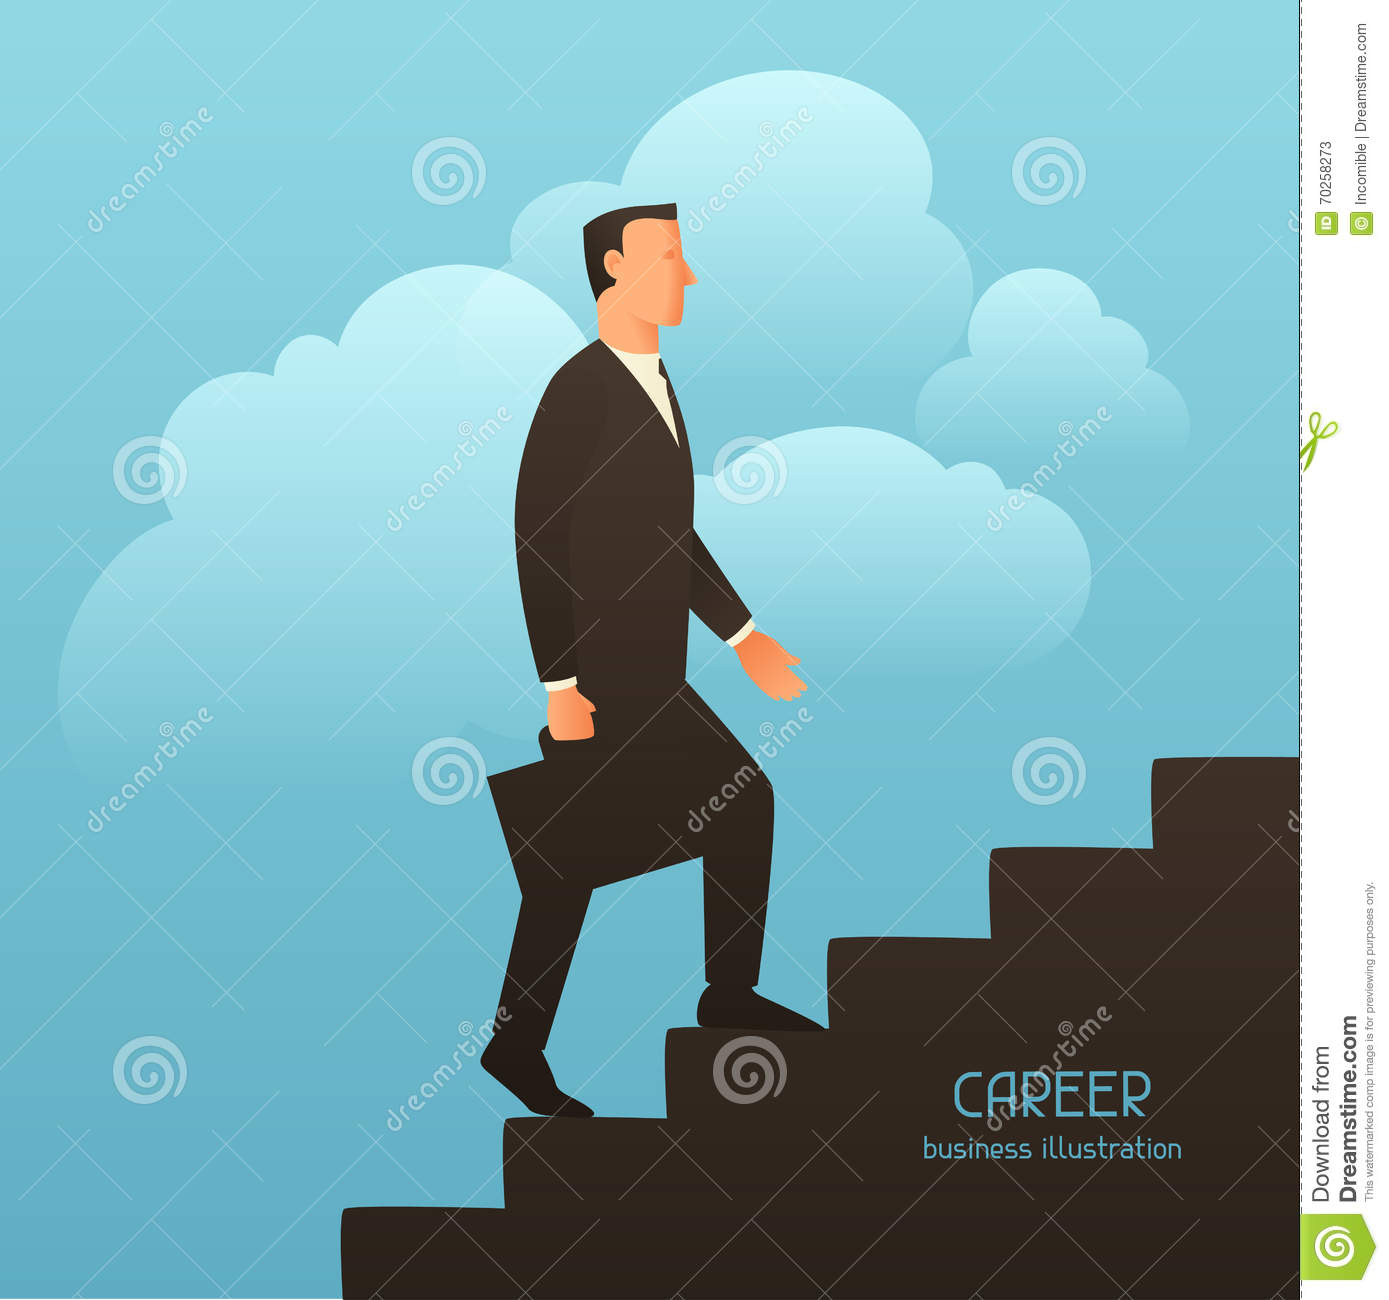 career business conceptual illustration businessman going career business conceptual illustration businessman going upstairs image for web sites articles